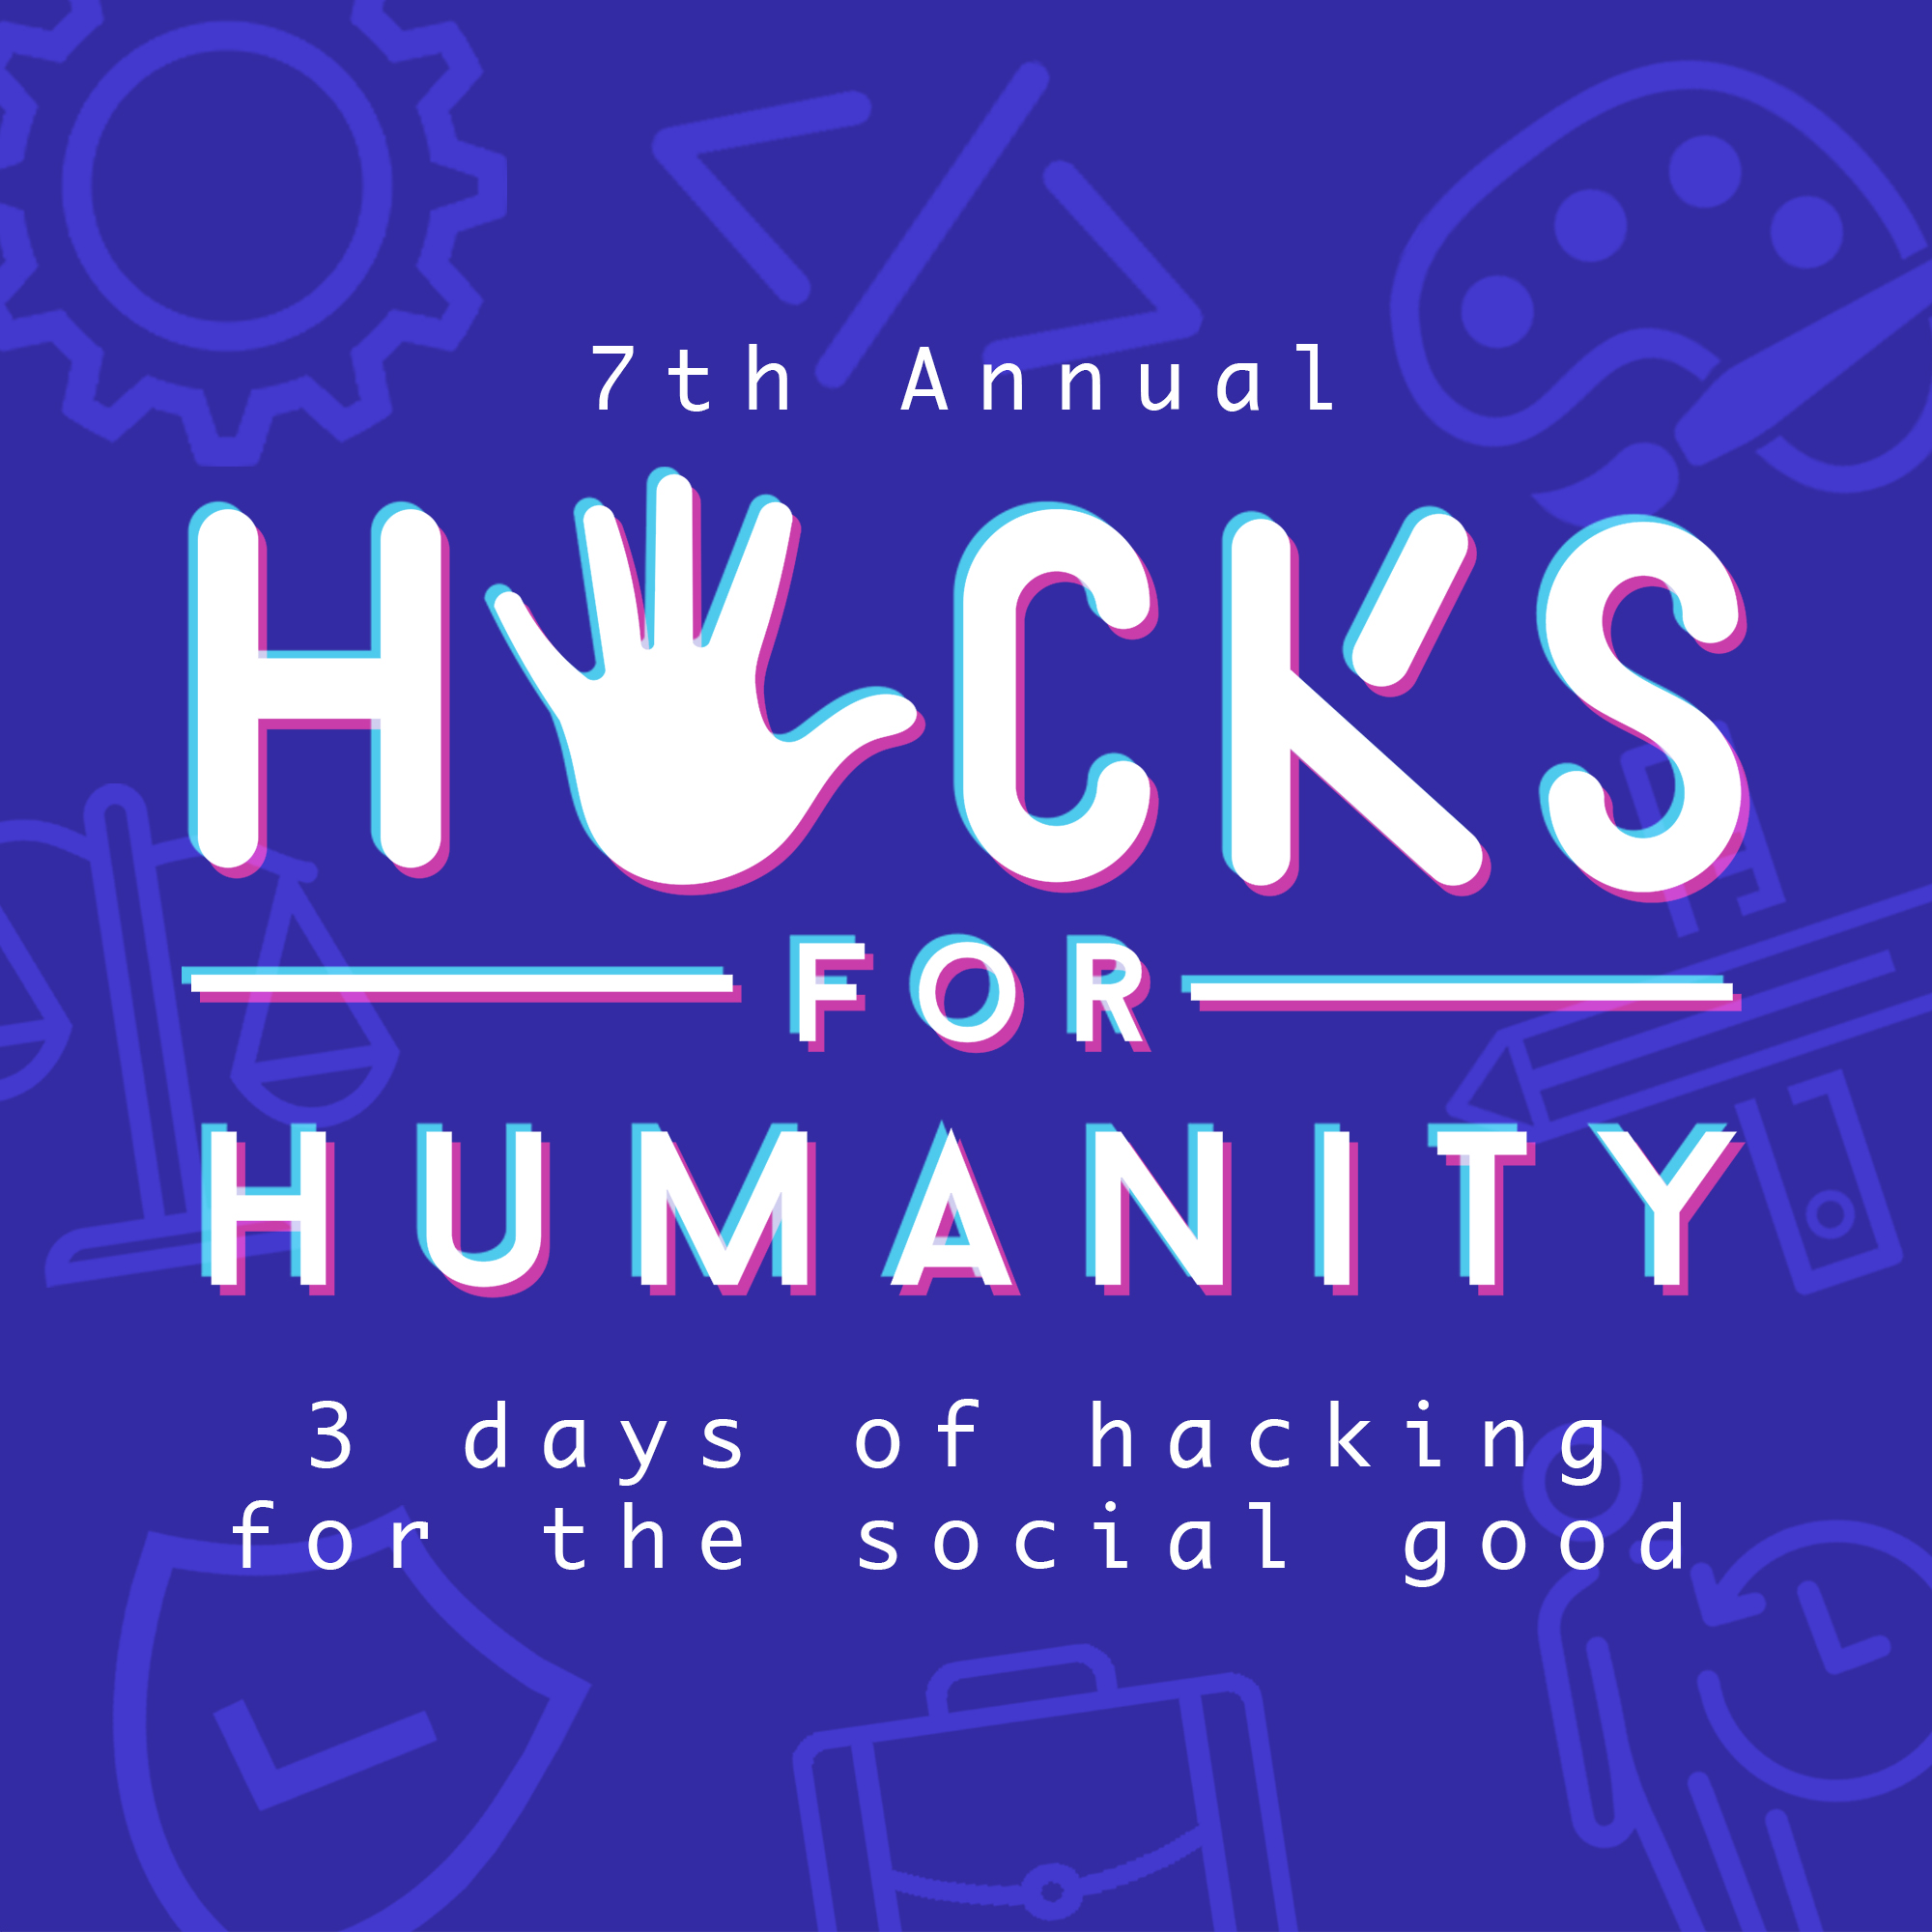 Hacks For humanity